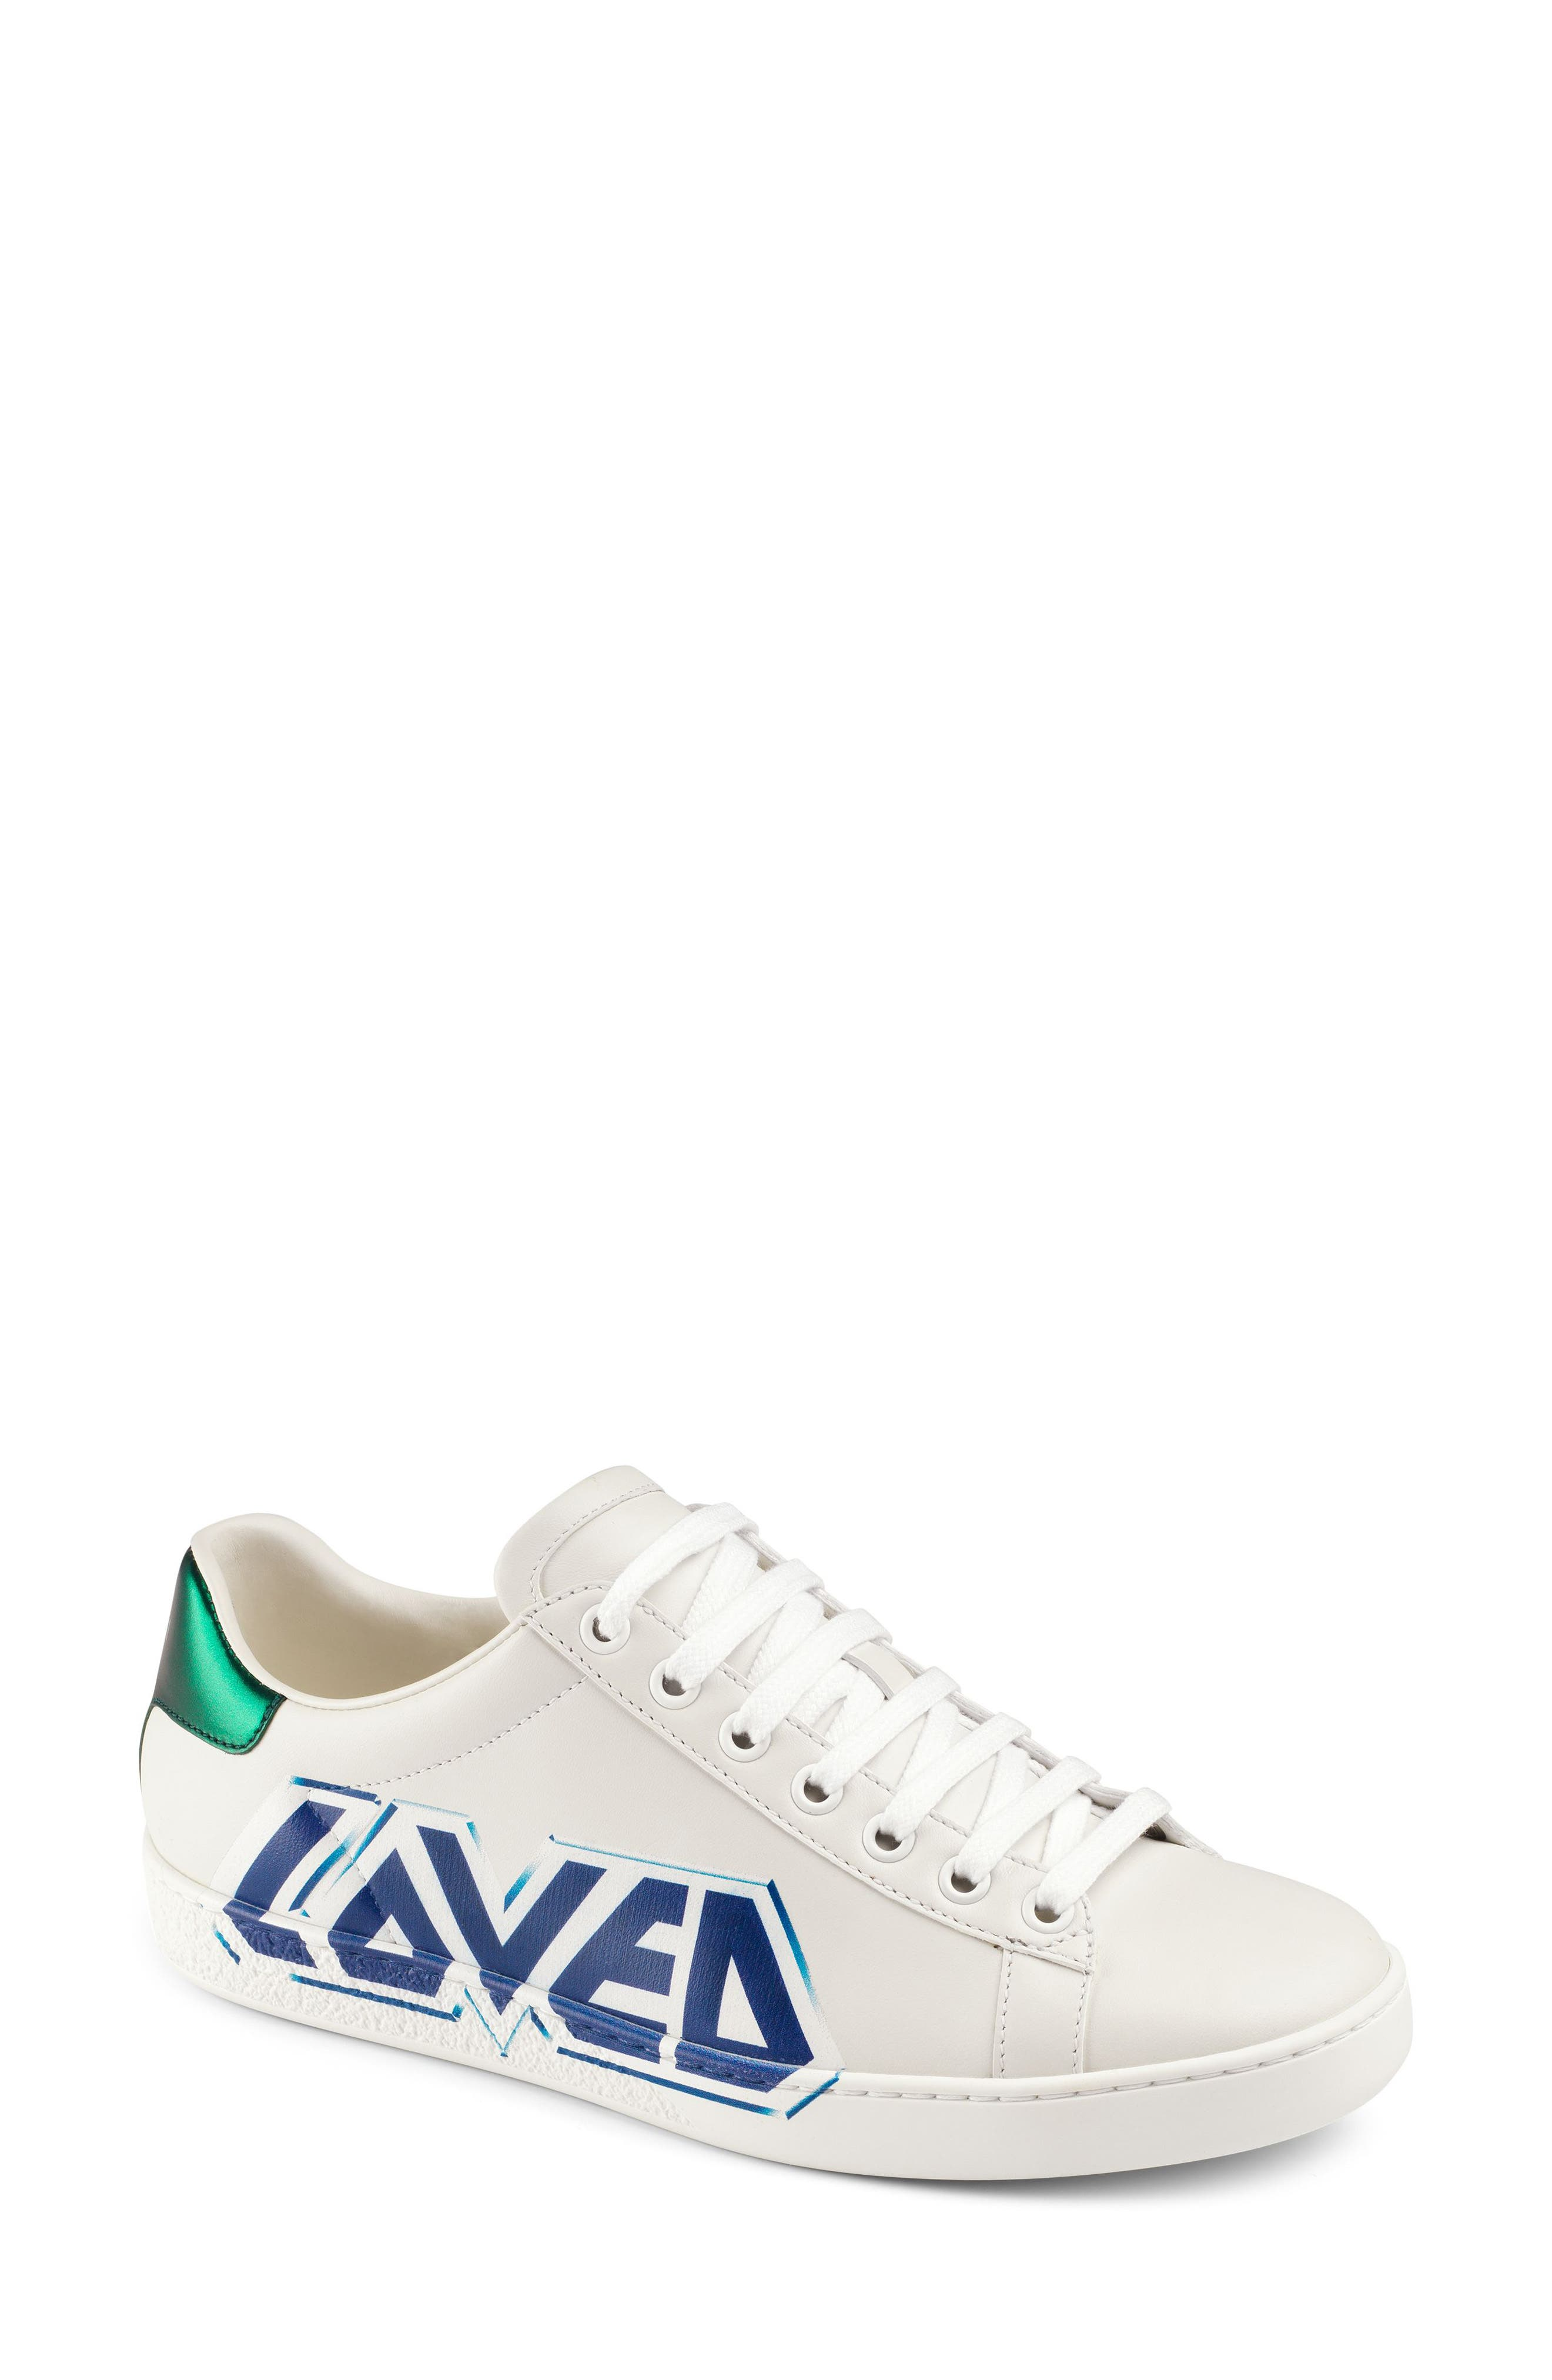 Gucci New Ace Loved Sneaker, White